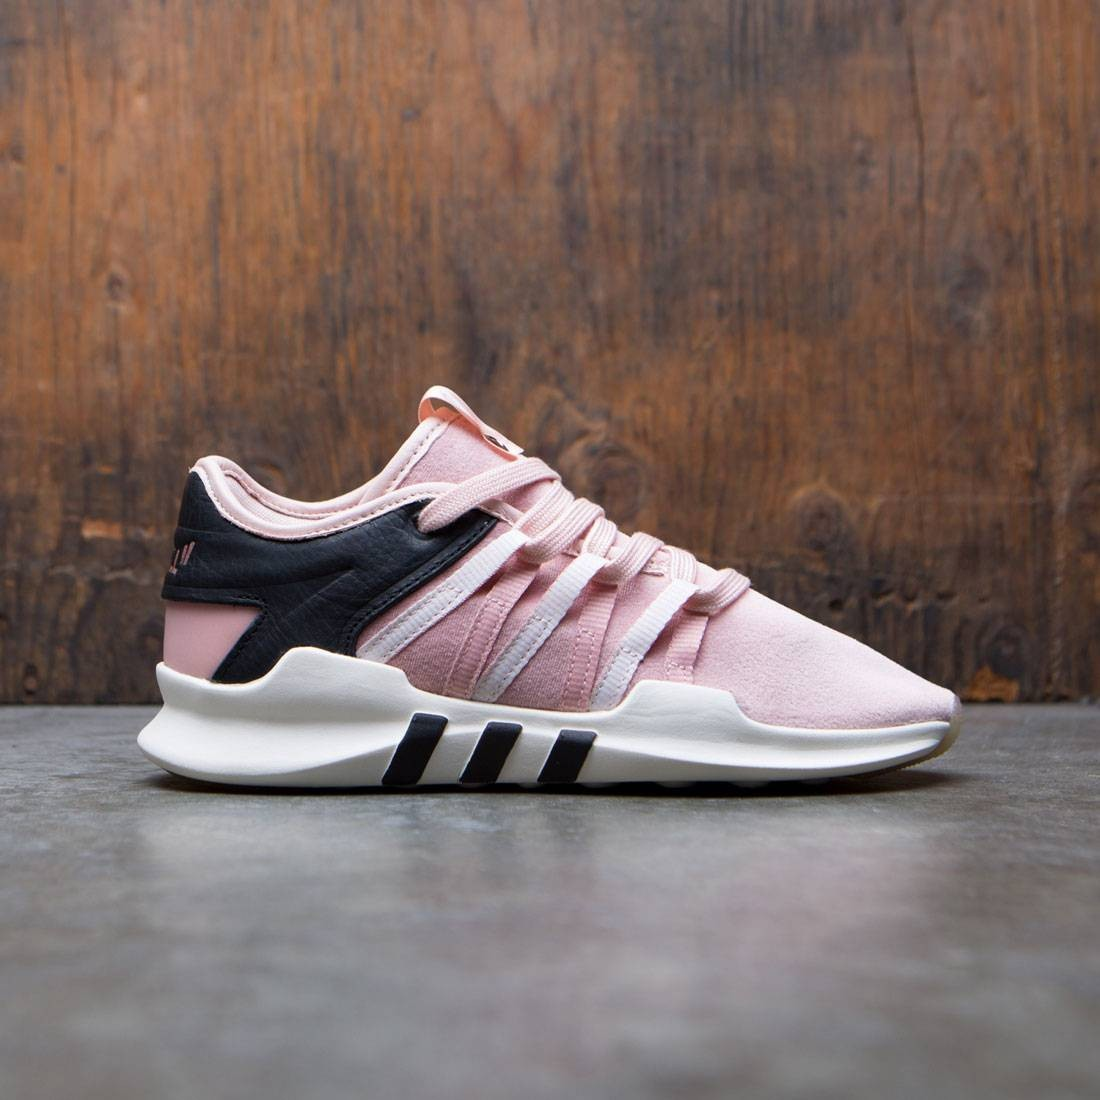 buy popular 6163f 86ae2 Adidas Consortium x Overkill x Fruition Women EQT Lacing ADV Sneaker  Exchange (pink / vapour pink / ice pink / chalk white)